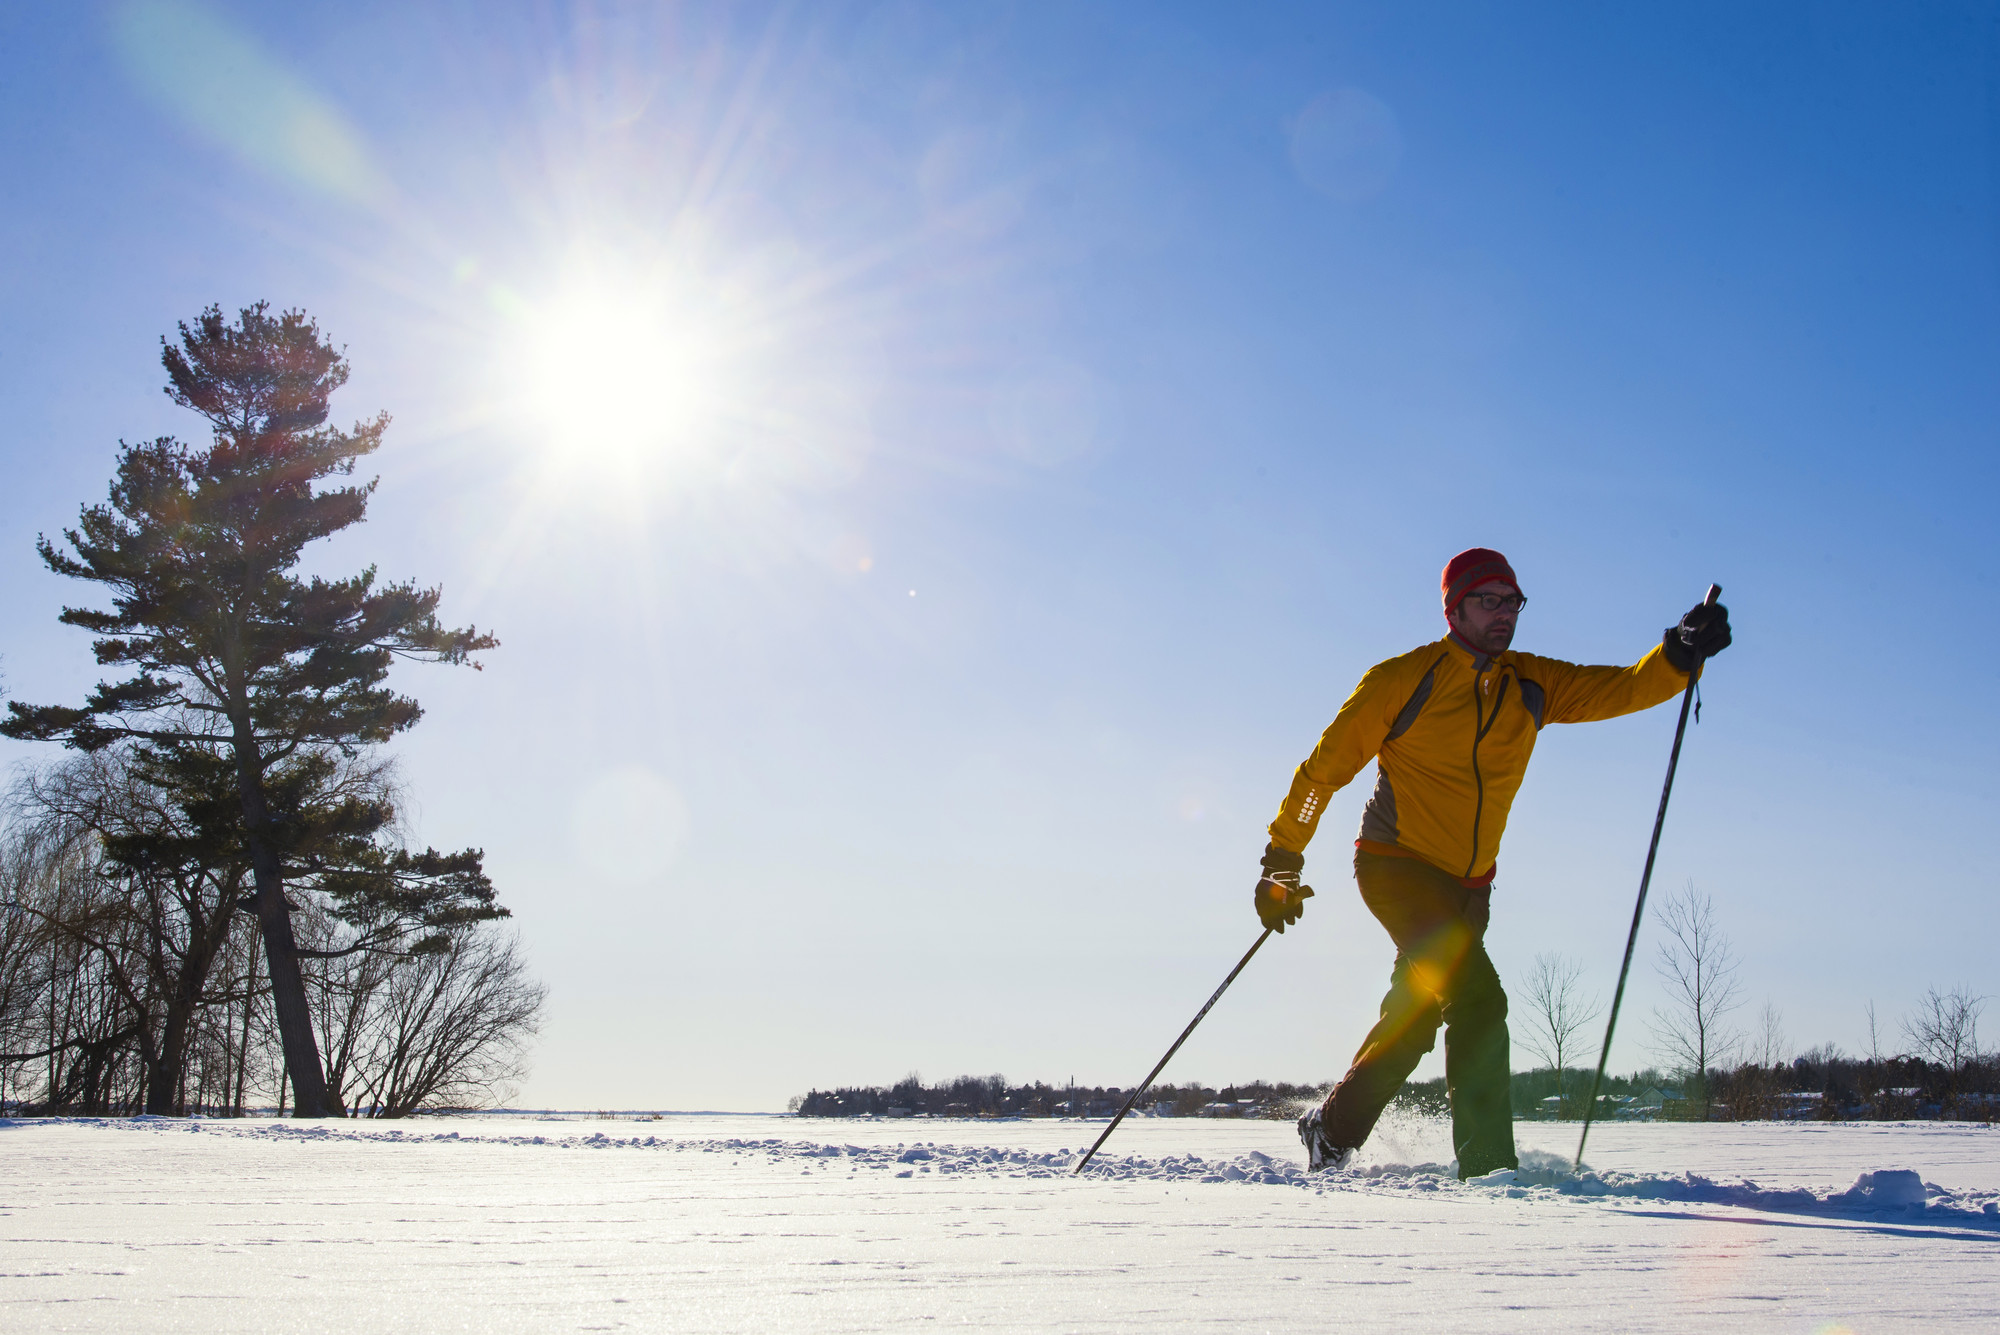 Whether you'd rather flat terrain with lake views, steeper slopes with forest below or something in between, you'll find it on a cross-country ski trail here.